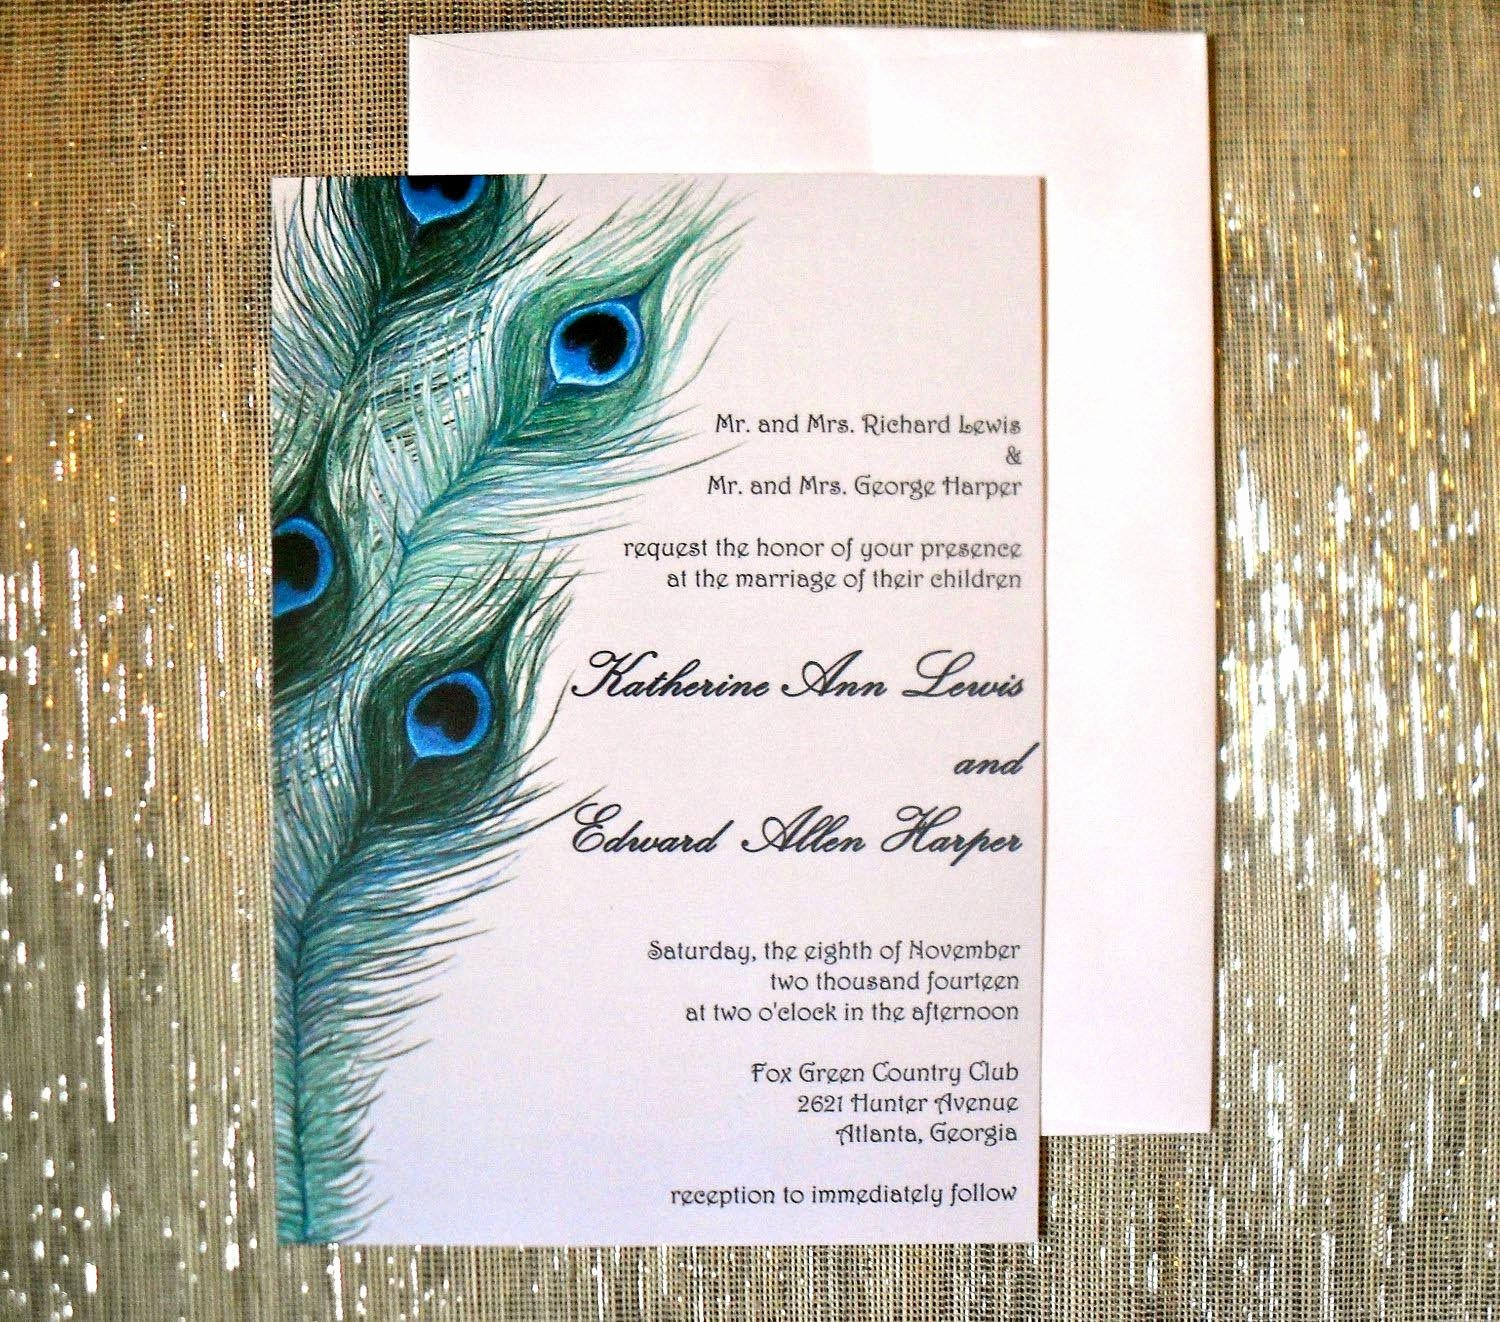 Peacock Wedding Invitations Template Awesome Peacock Invitation Cards Peacock Wedding Invites Etsy